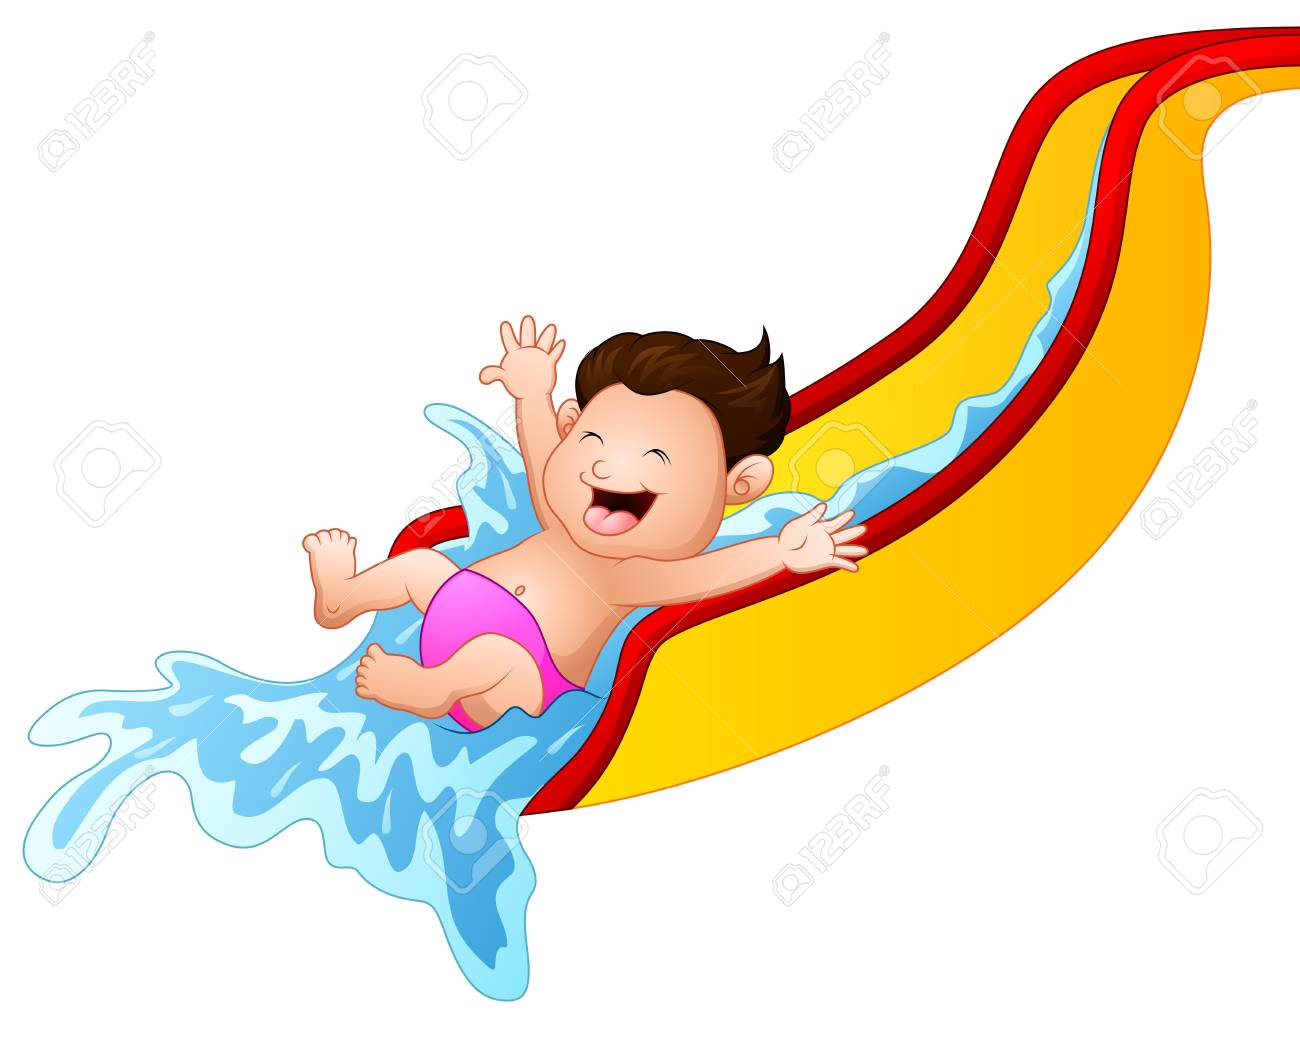 cartoon boy playing waterslide royalty free cliparts vectors and rh 123rf com water slide clipart images water slide clipart images